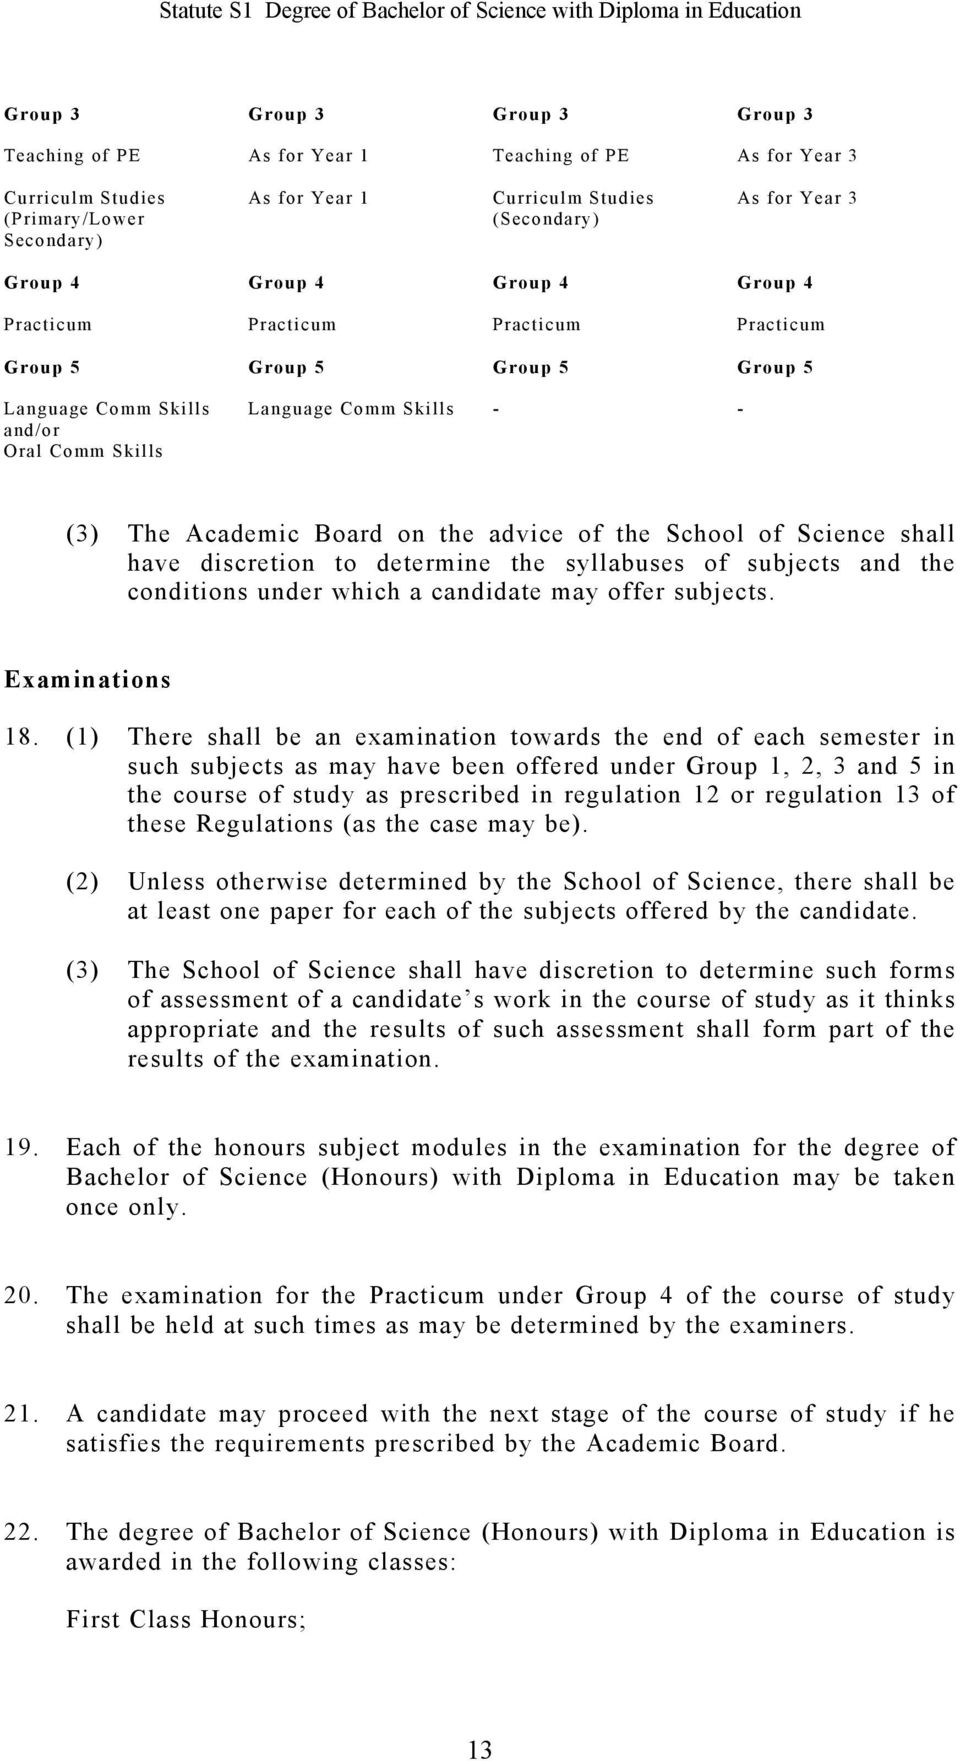 advice of the School of Science shall have discretion to determine the syllabuses of subjects and the conditions under which a candidate may offer subjects. Examinations 18.